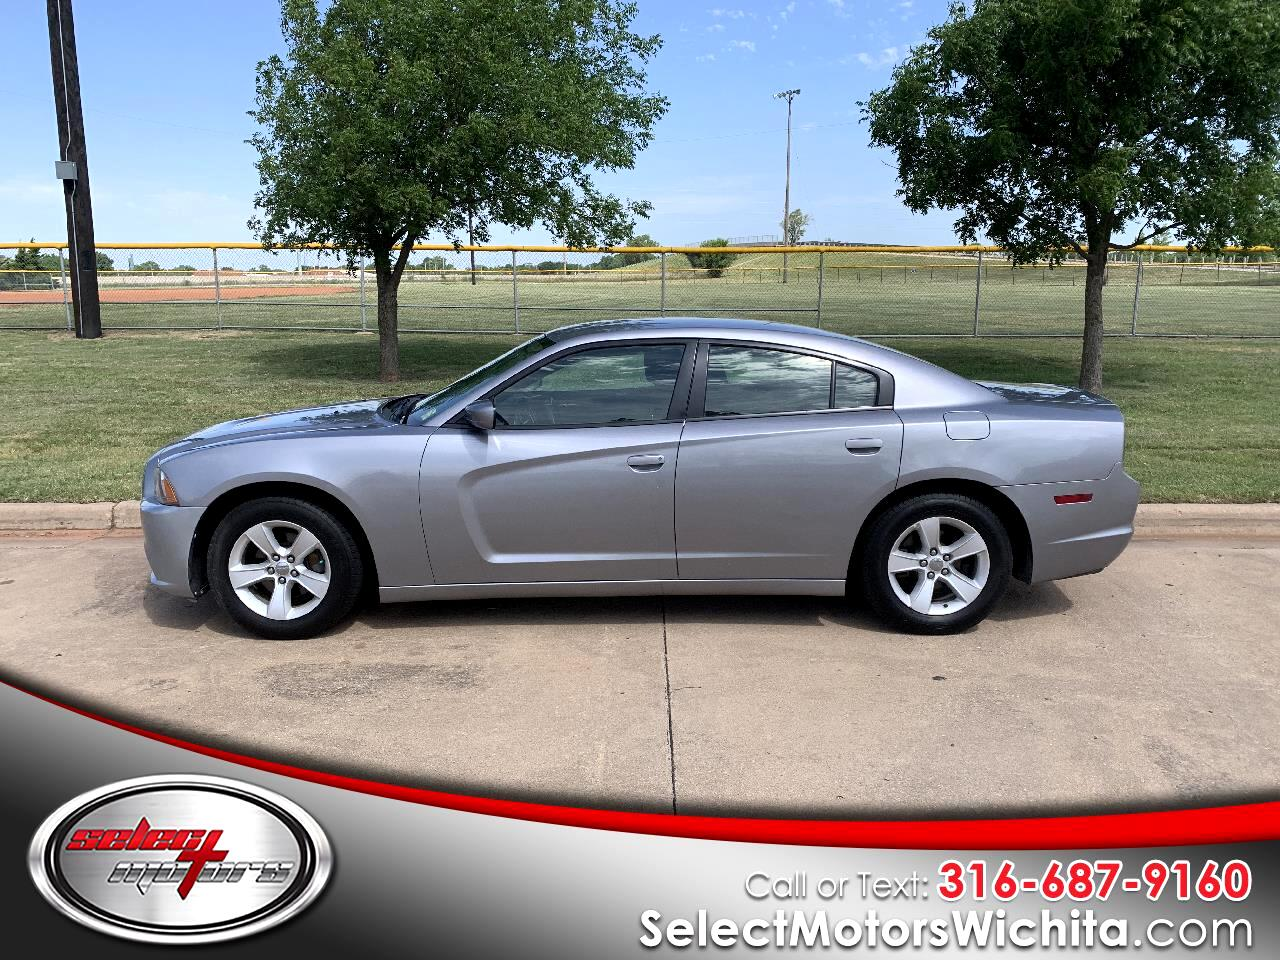 Dodge Charger 4dr Sdn SE RWD 2013